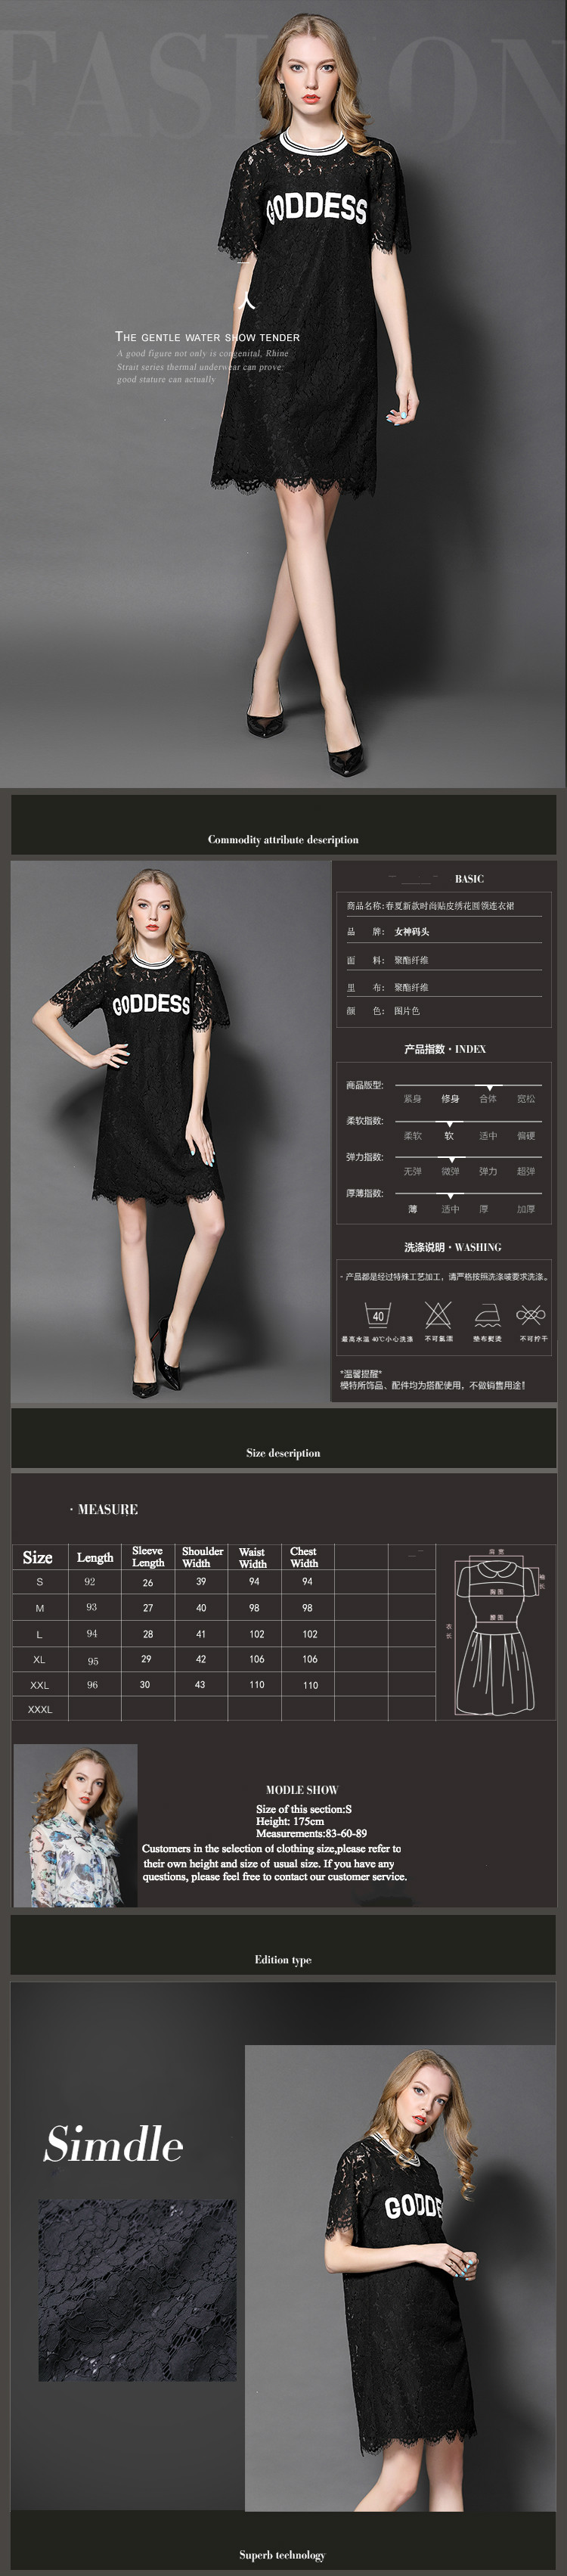 2017 lady lace black dresses womens summer style Casual Mini dress loose o-neck letter print female dresses